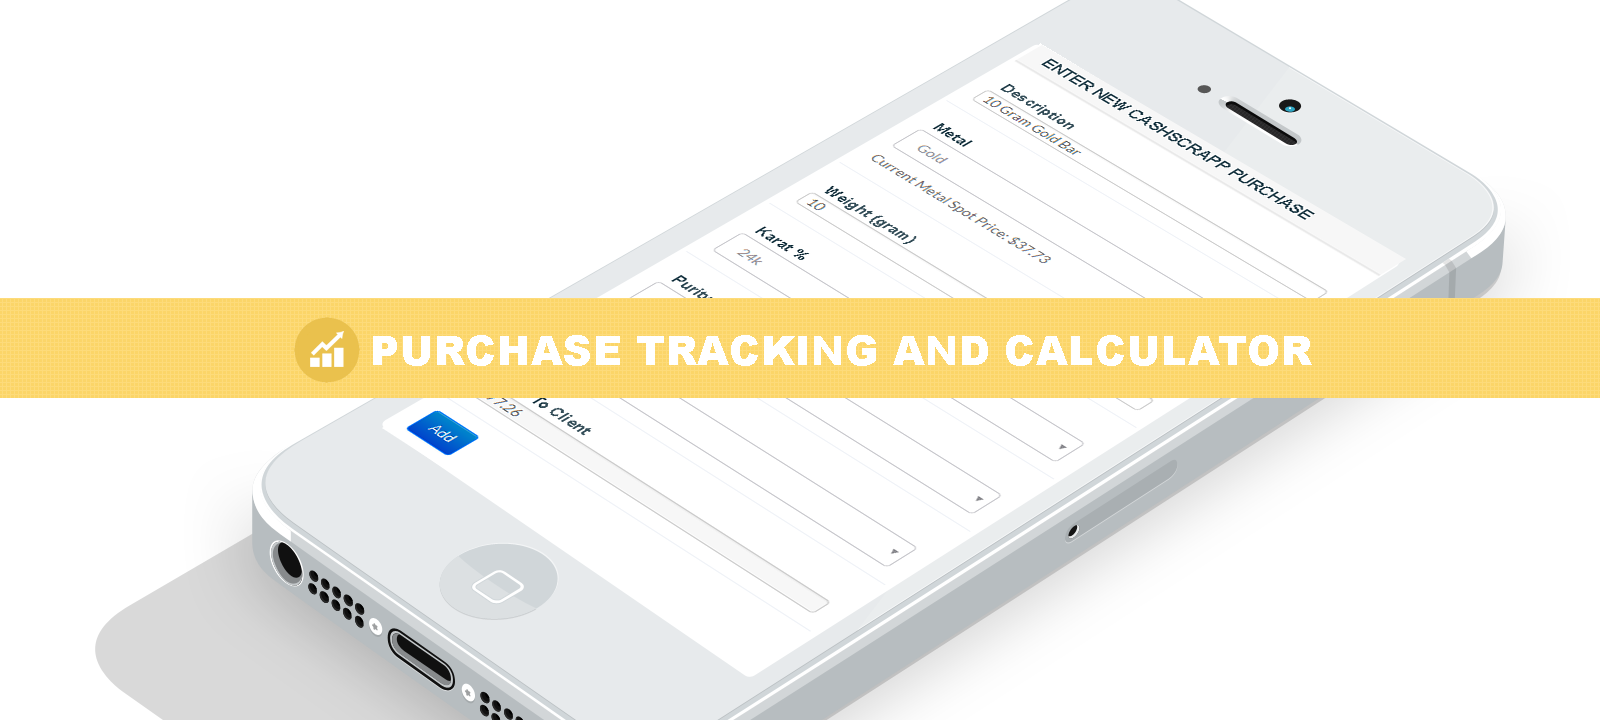 Cash for gold purchase tracking application and calculator.